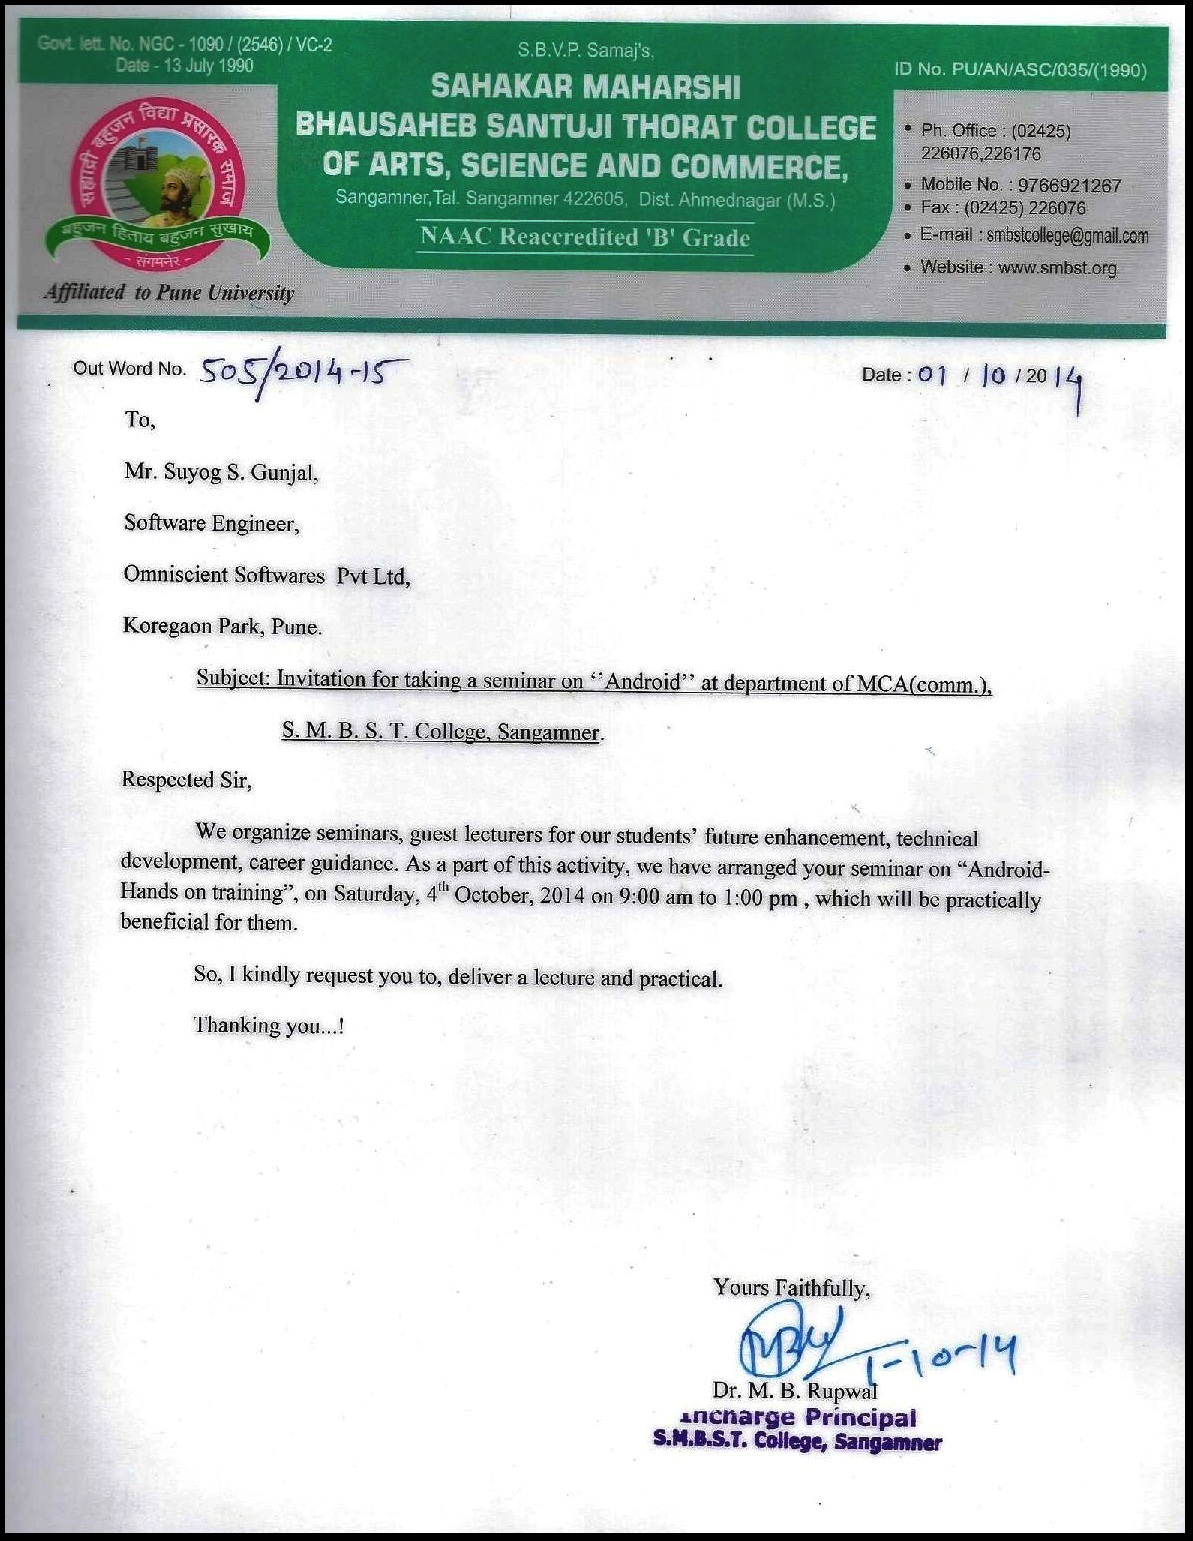 Psychic technologies suyog gunjal android seminar experience letter by sangamner college 2014 stopboris Images